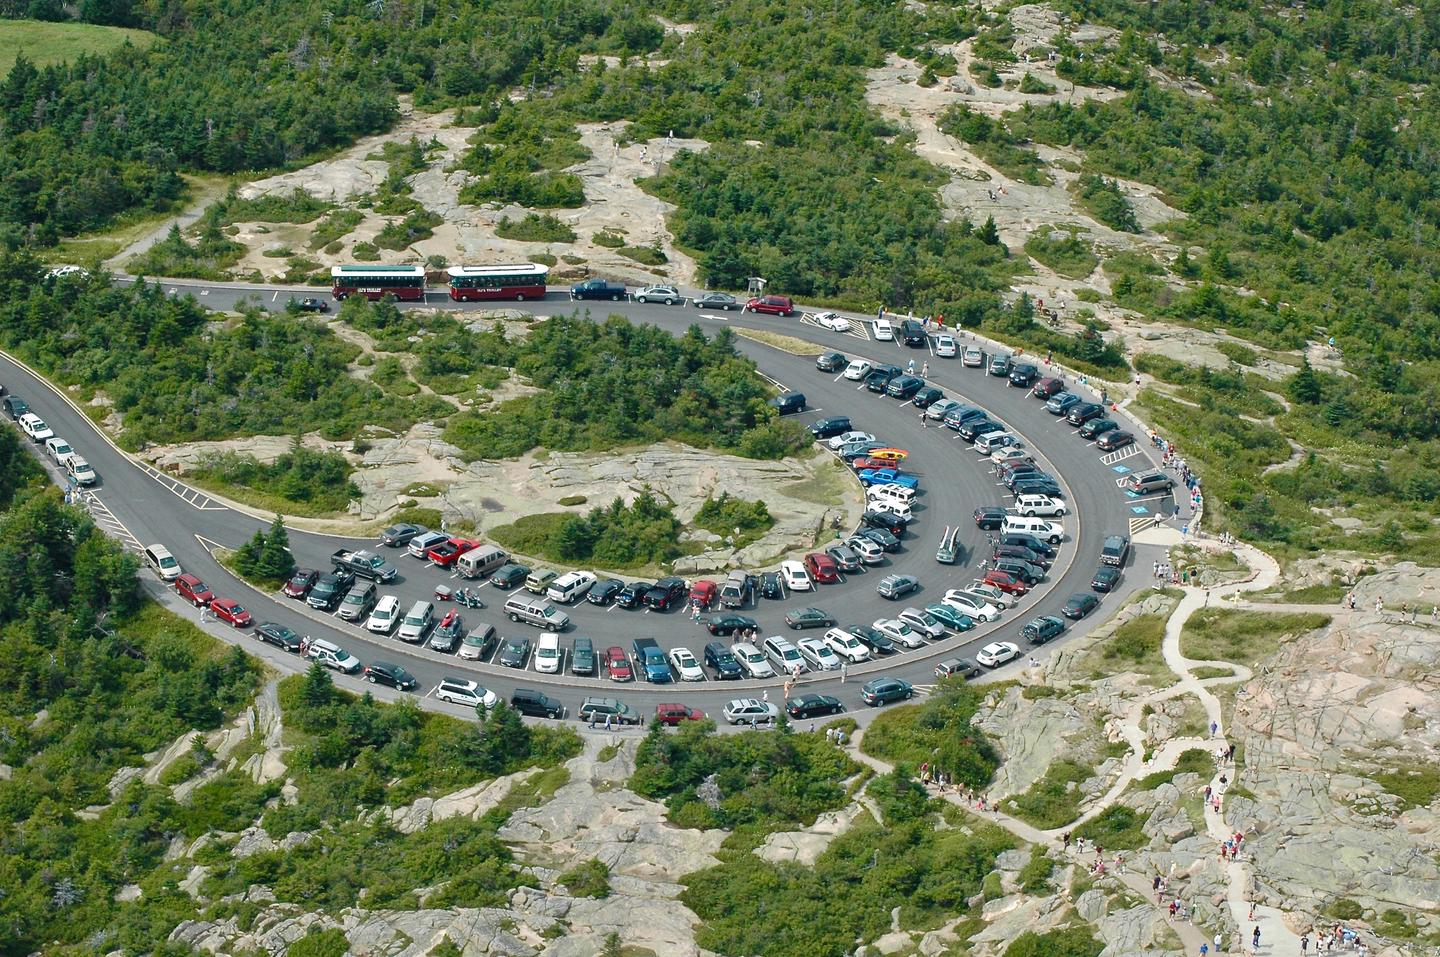 Aerial view of the Cadillac Summit parking area full with cars and two trollies surrounded by trees and granite ledges.Bird's eye view of the Cadillac Summit parking area and paved walks.